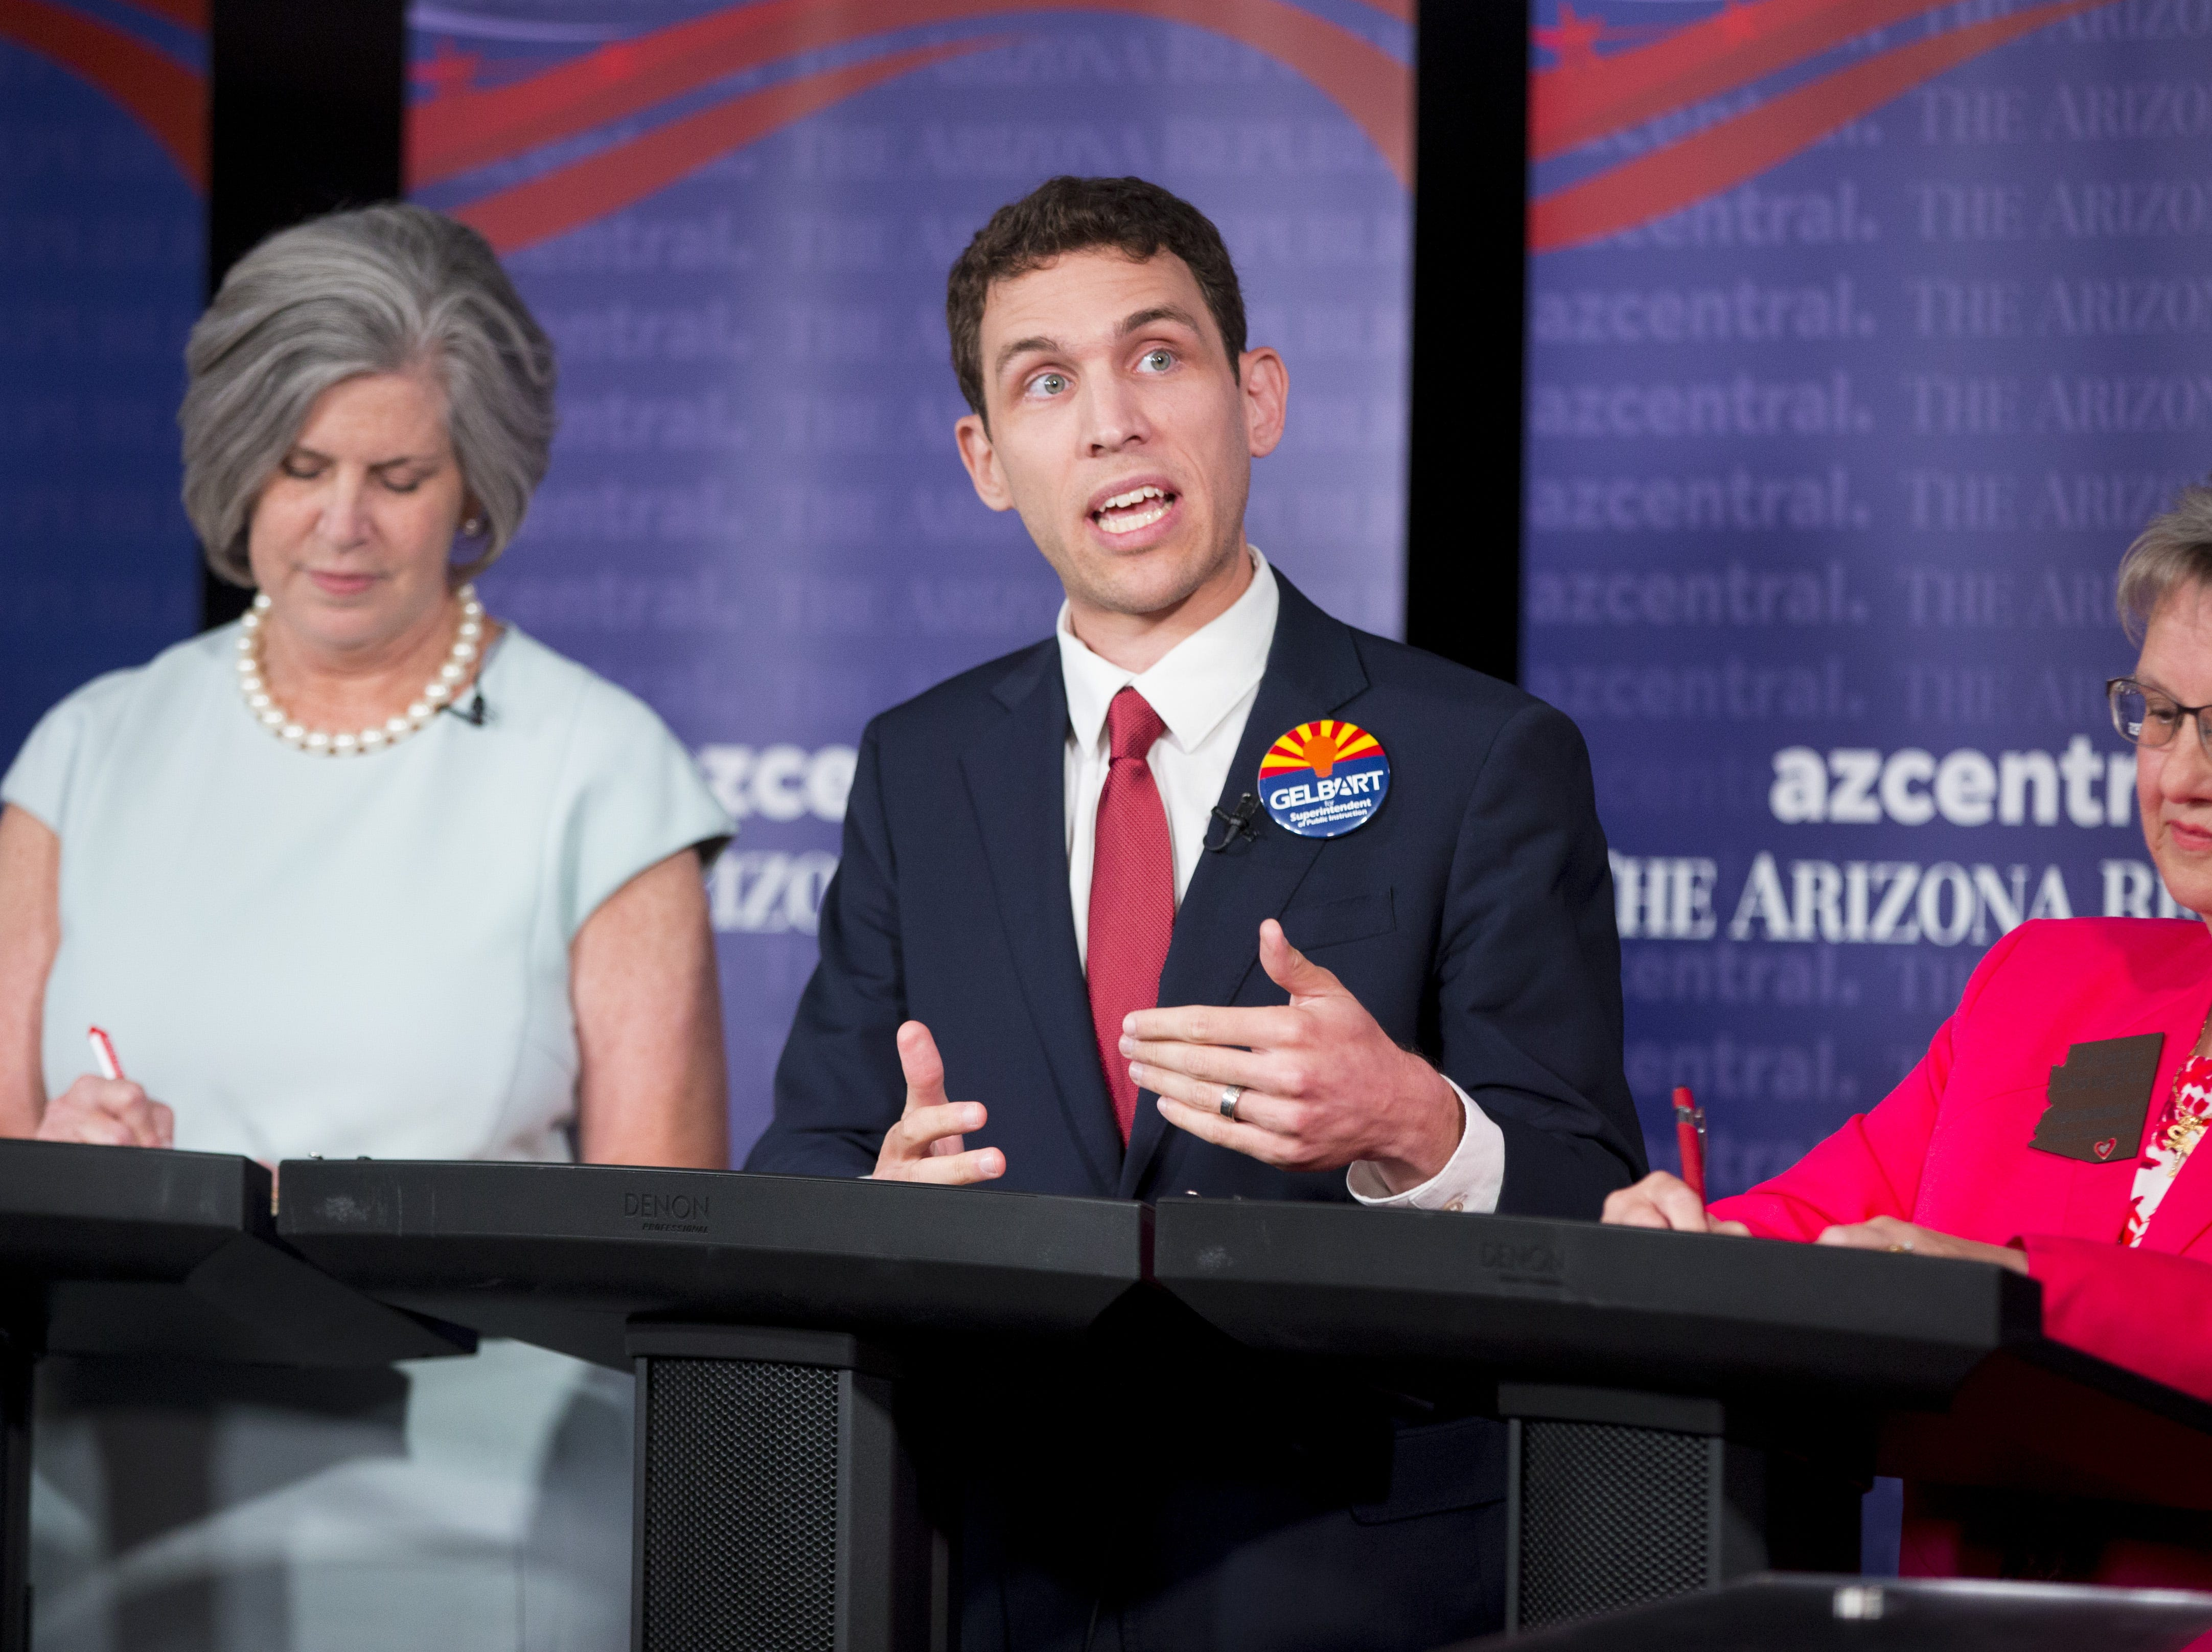 Jonathan Gelbart, candidate for state superintendent of public instruction, speaks during a debate at The Arizona Republic on August 1, 2018.